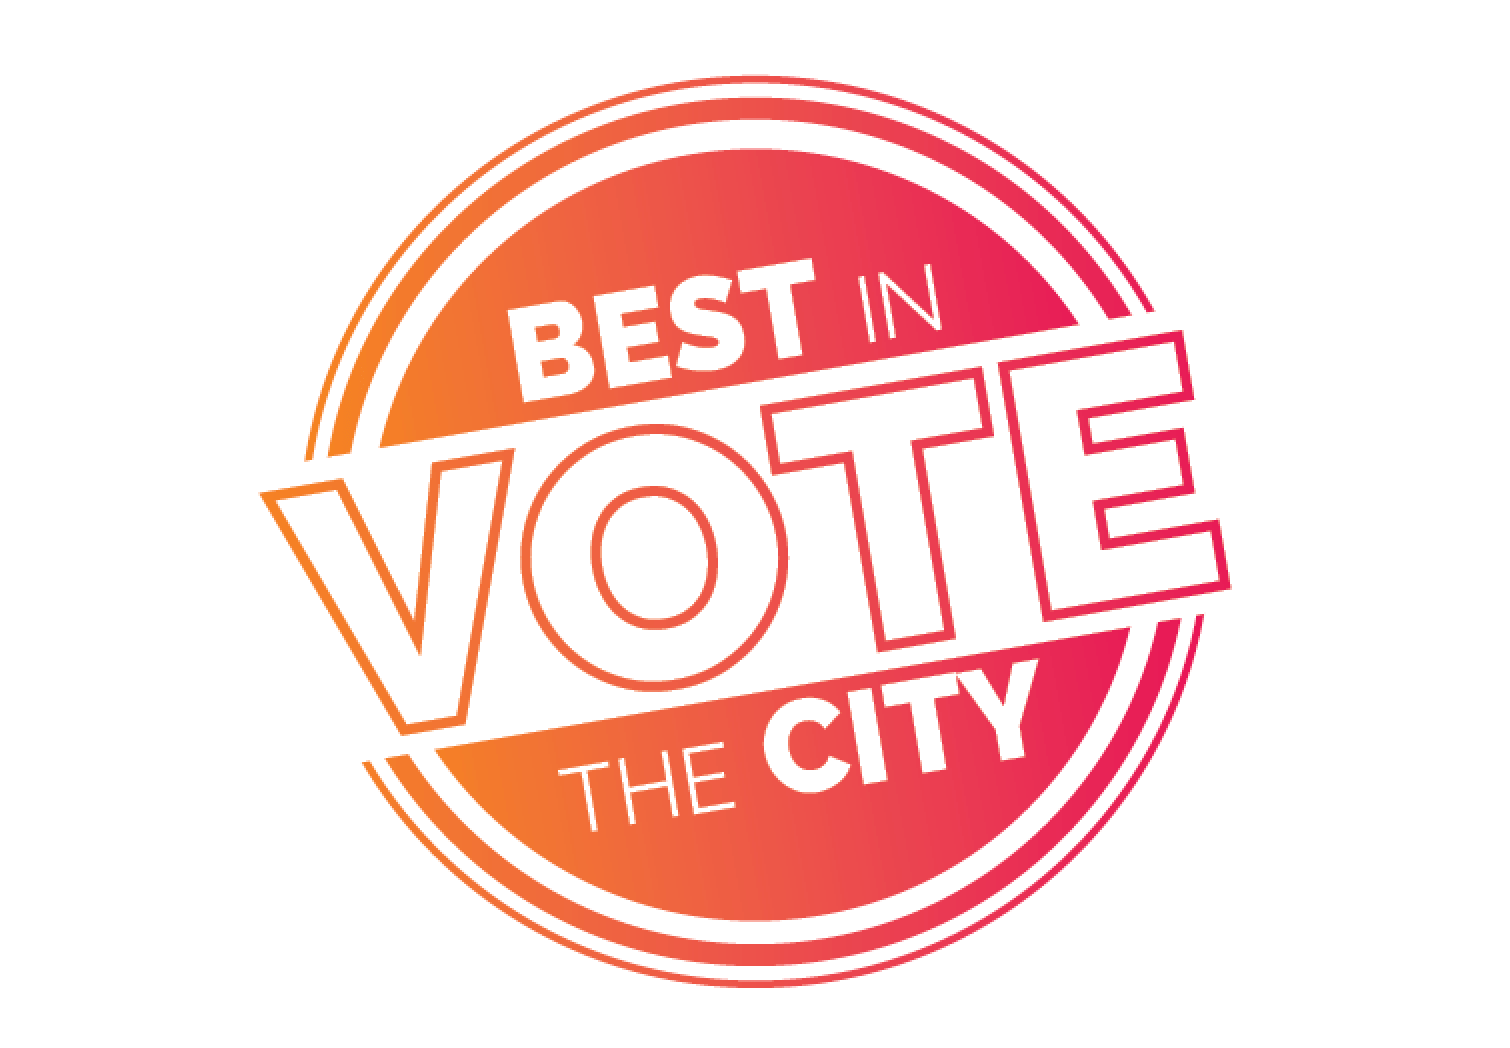 VOTE BEST IN THE CITY